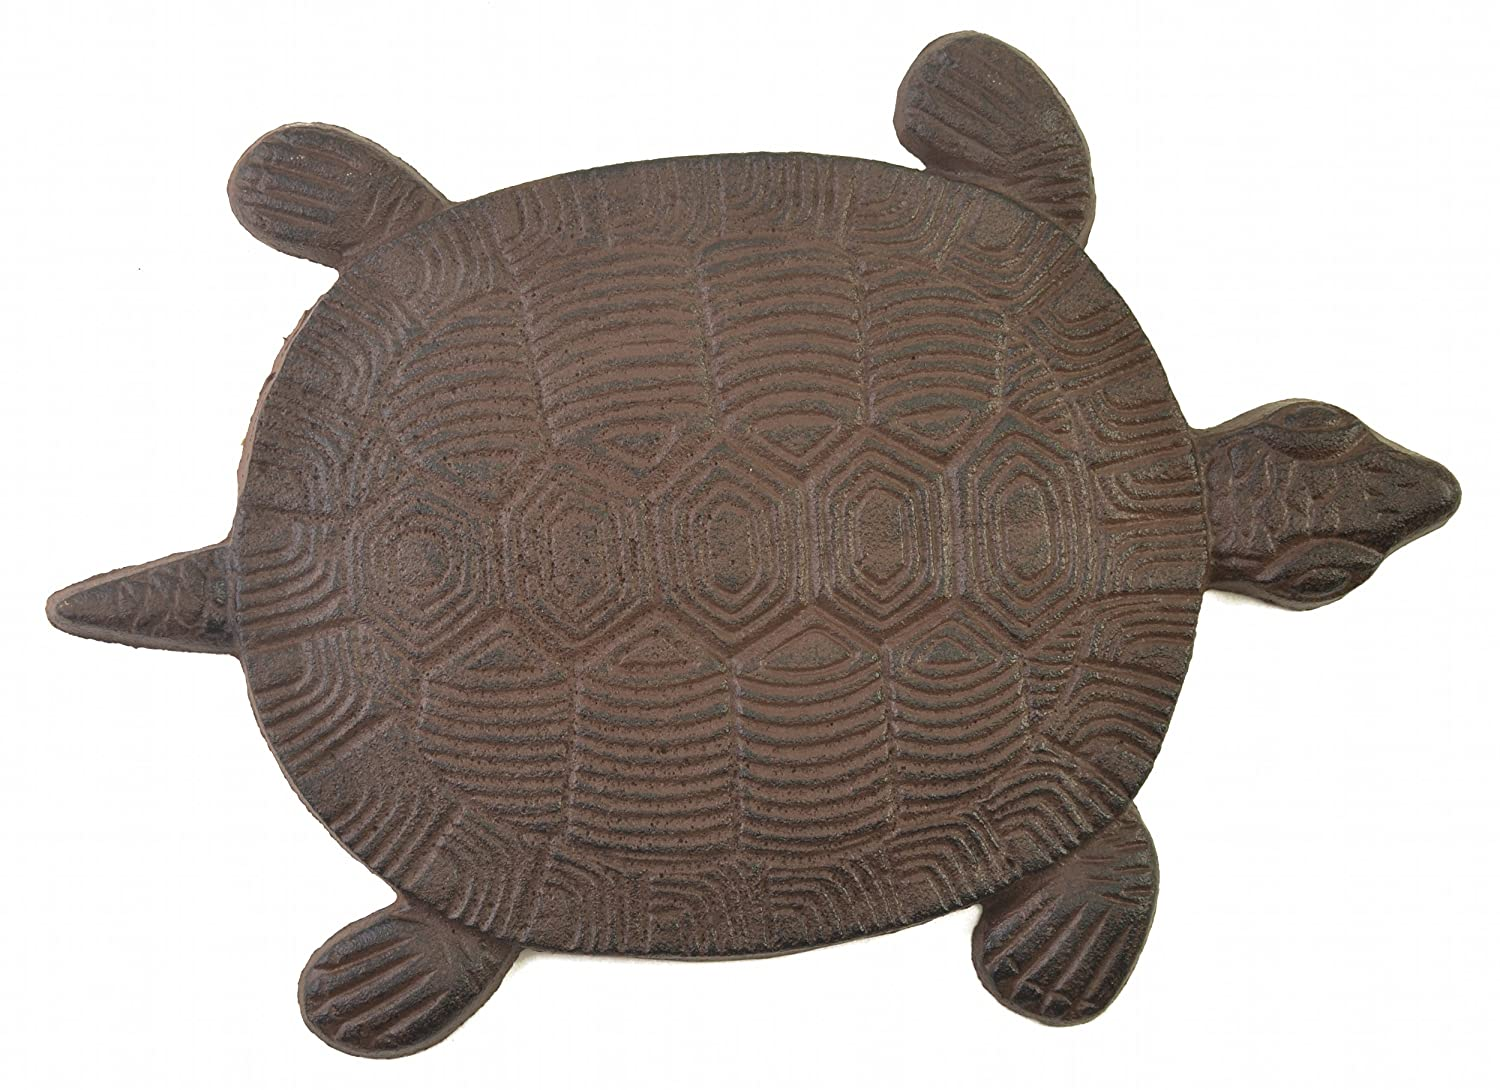 Turtle Stepping Stone Cast Iron Outdoor Yard and Garden Decor Brown